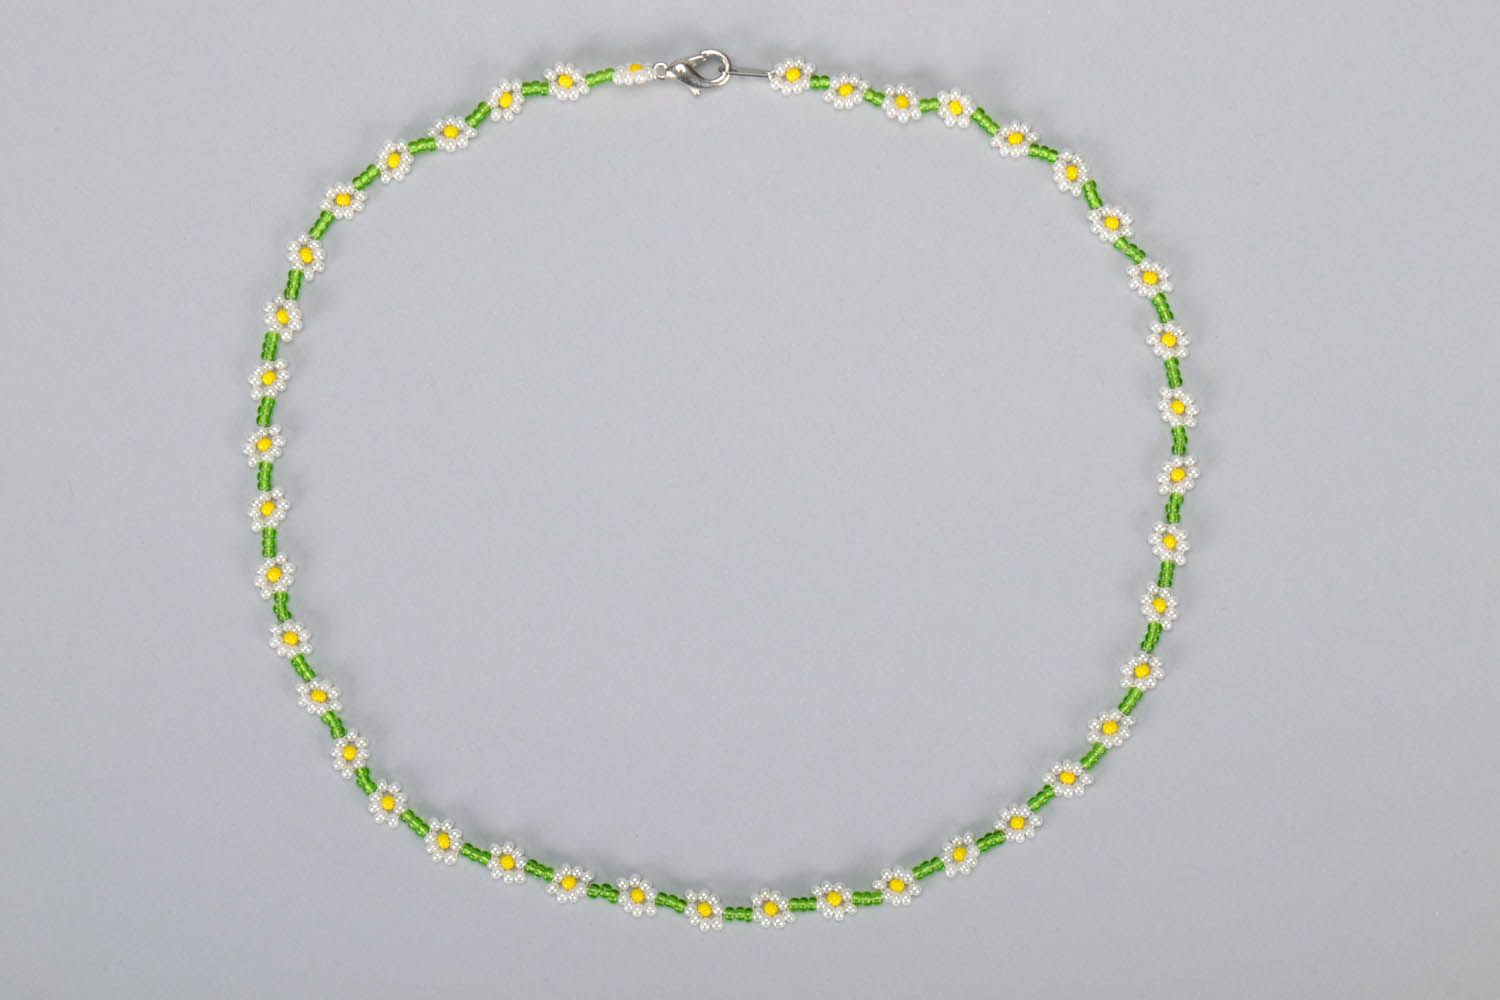 Beaded necklace-bracelet photo 2